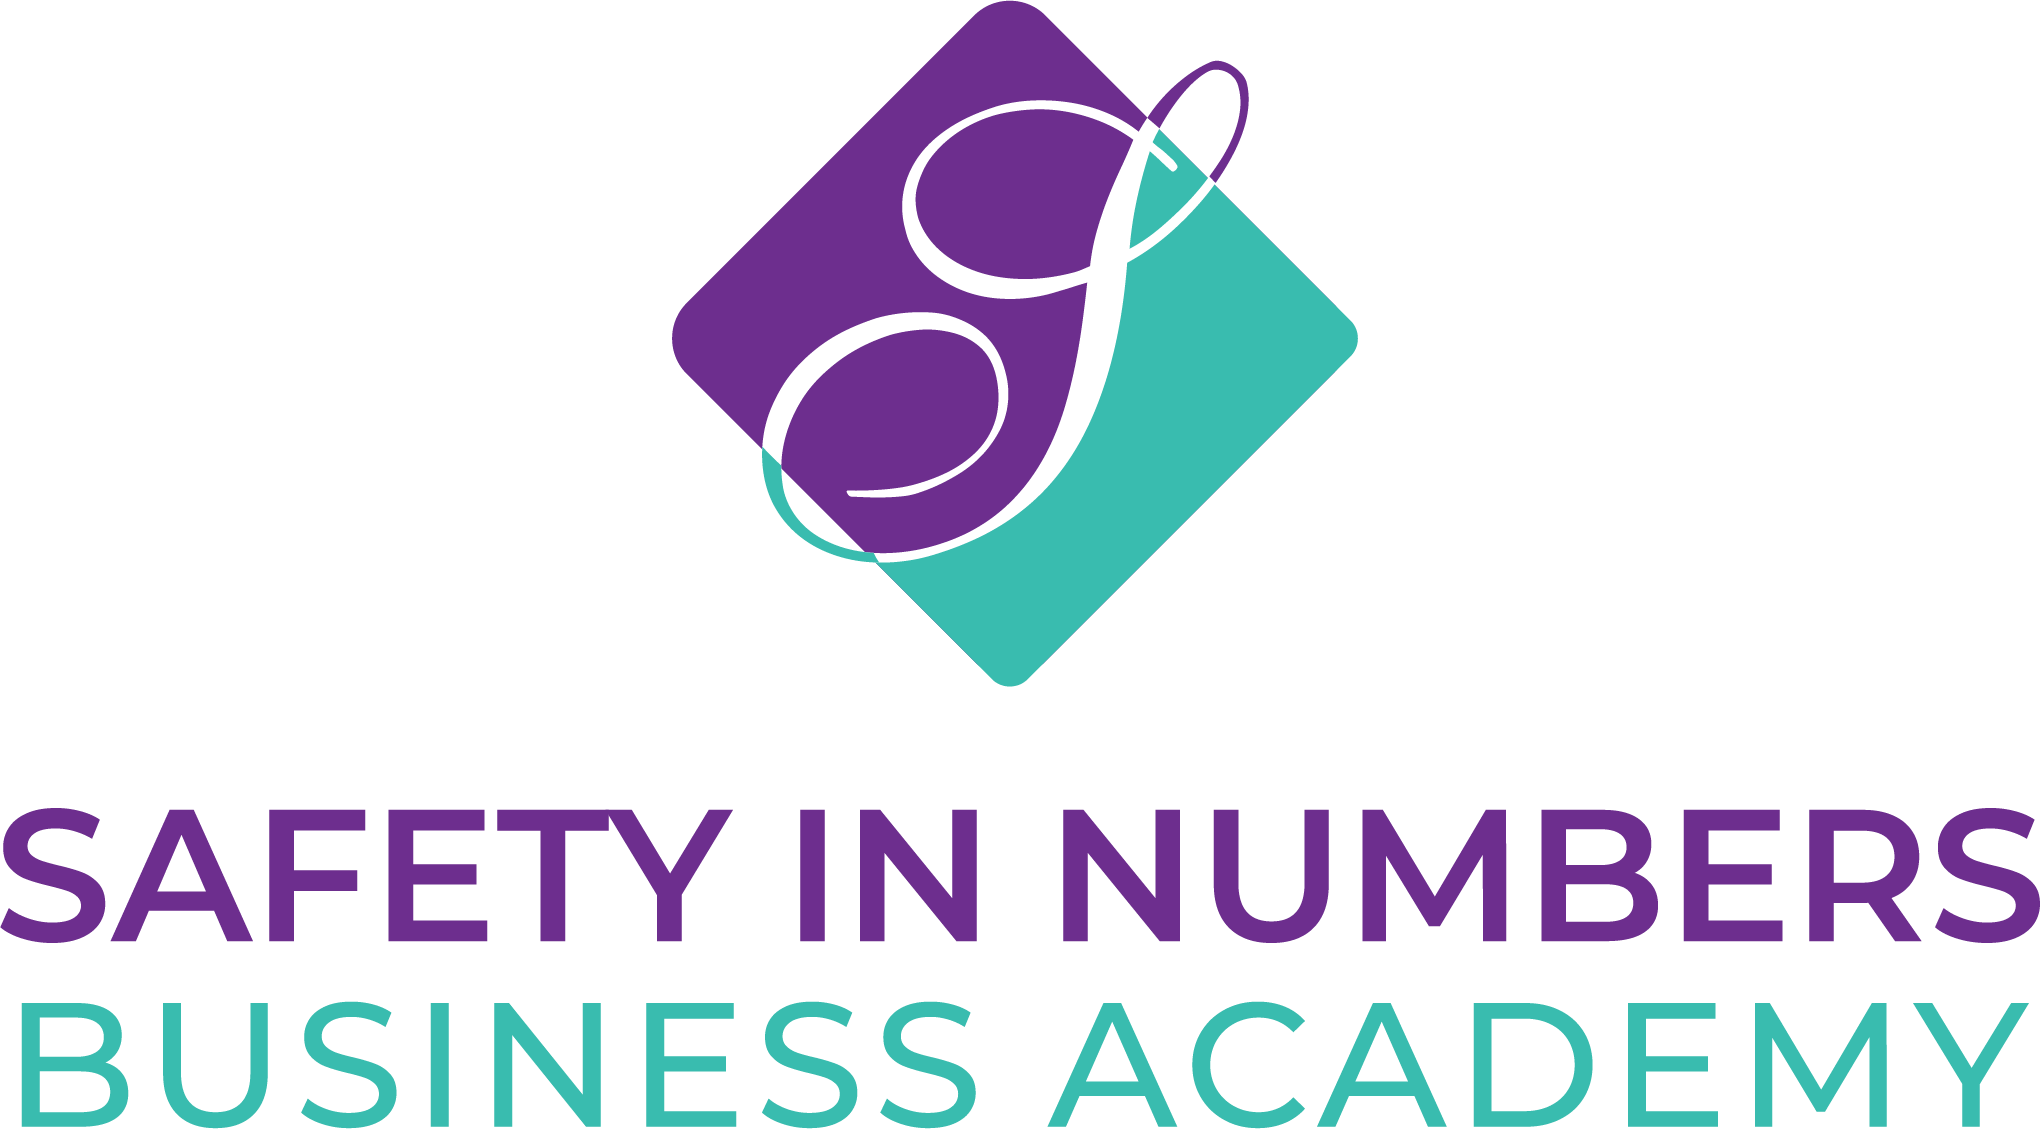 Safety In Numbers Business Academy